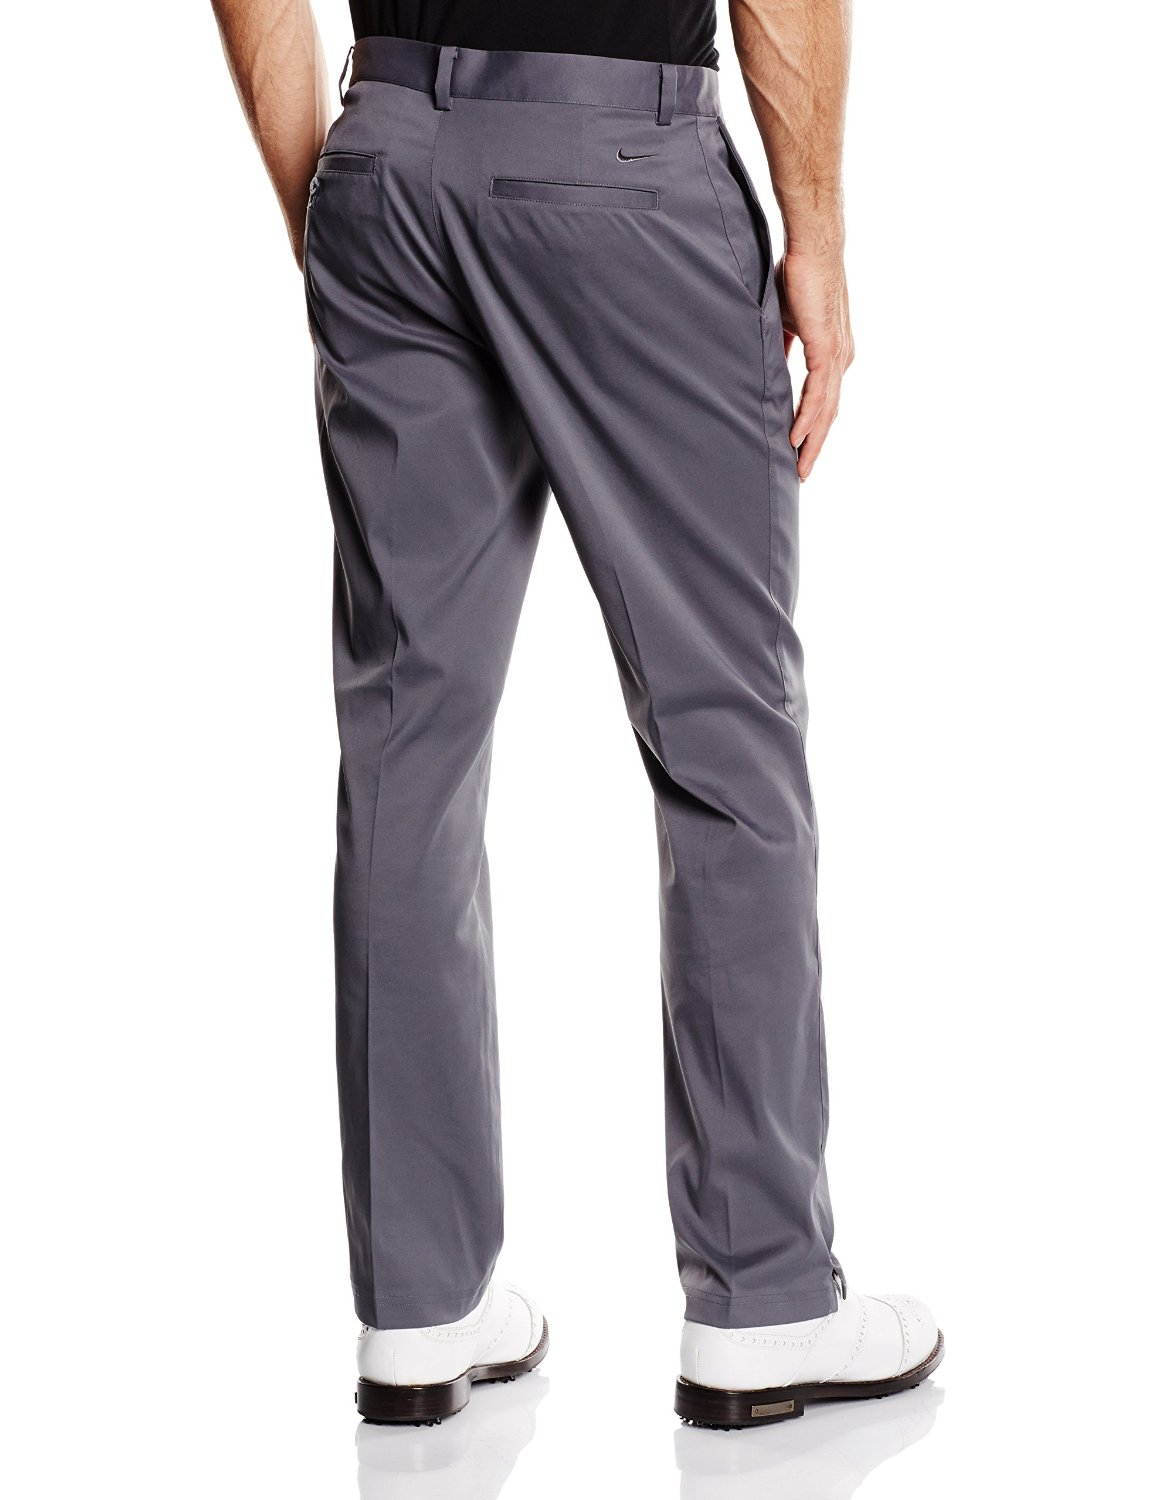 0b892063 What are the Best Golf Pants? - Golf Gear Geeks